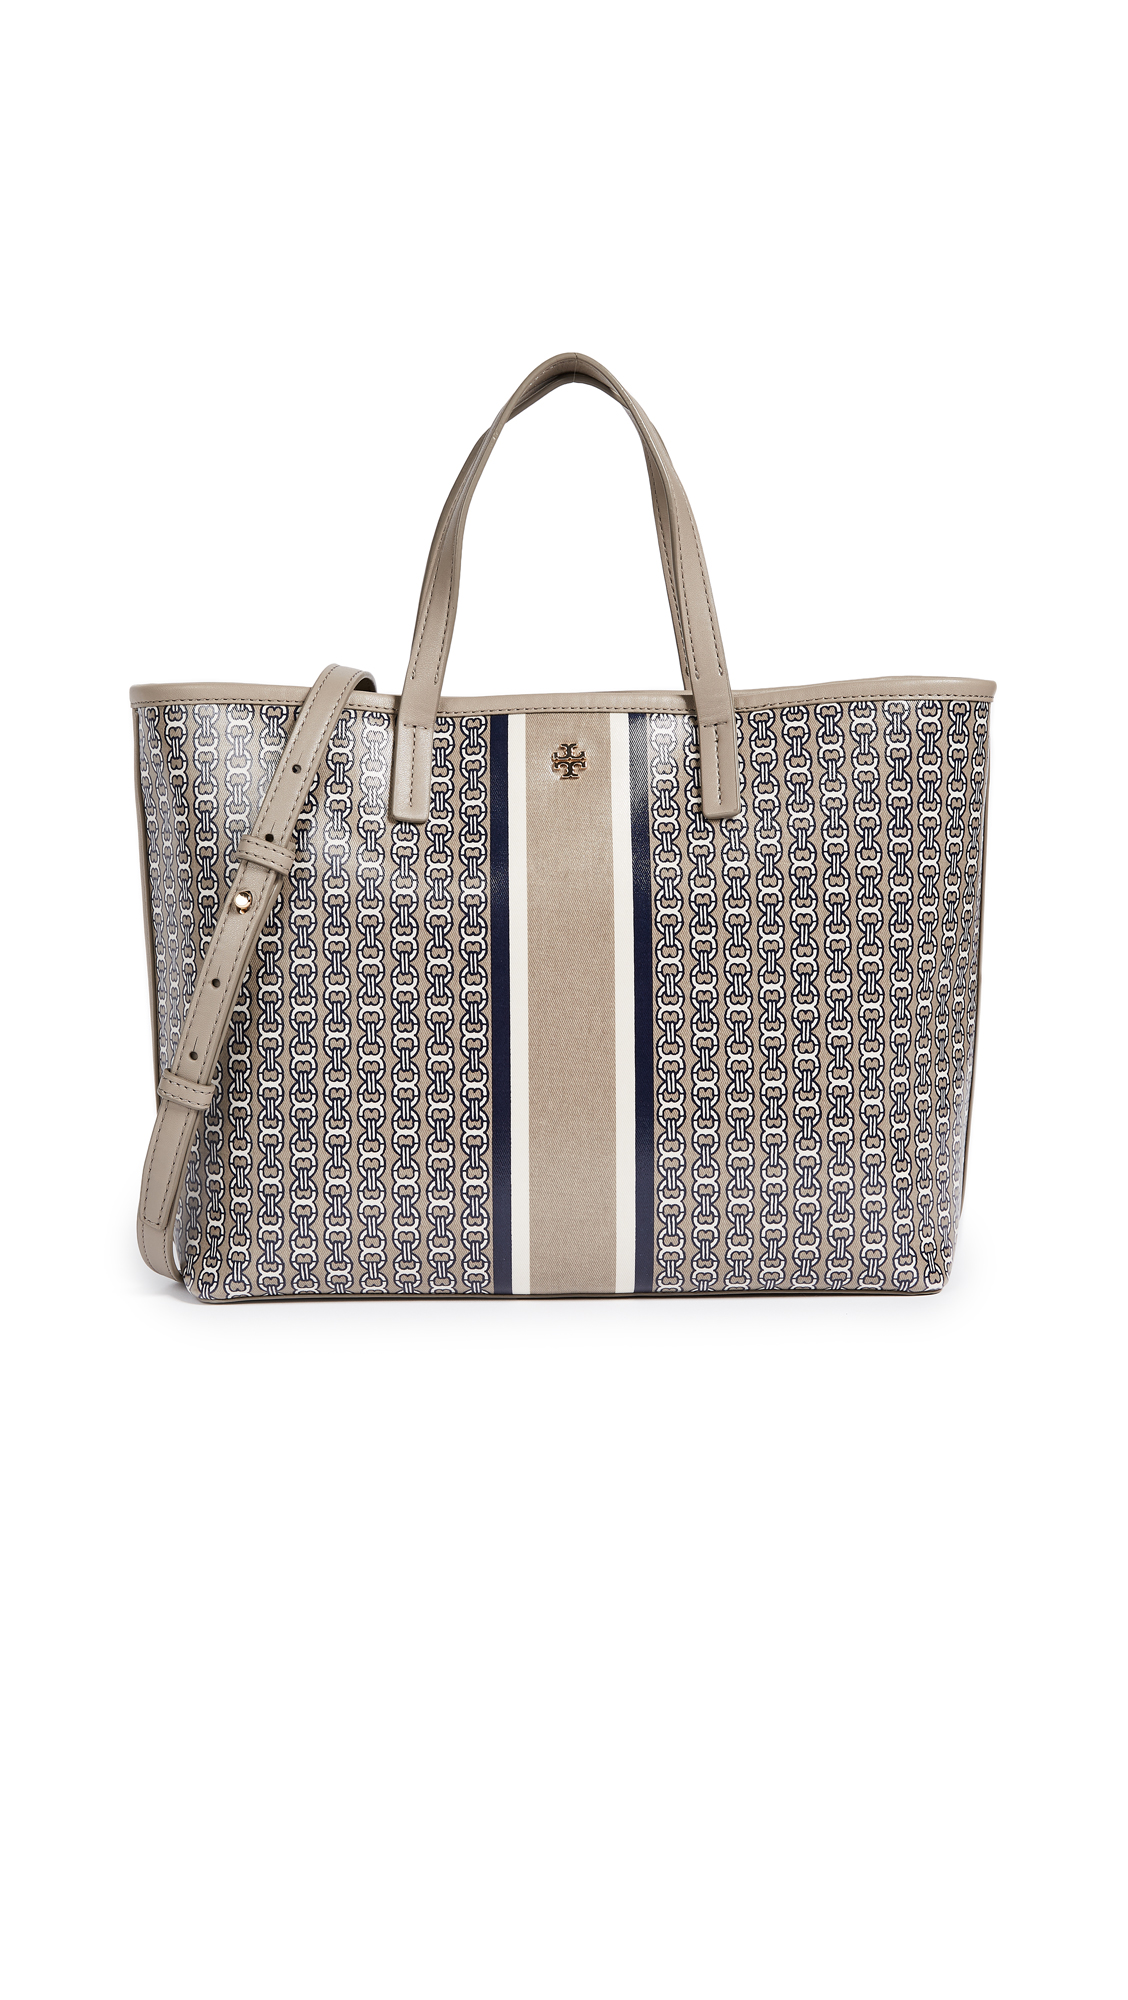 Tory Burch Gemini Link Small Tote - French Grey